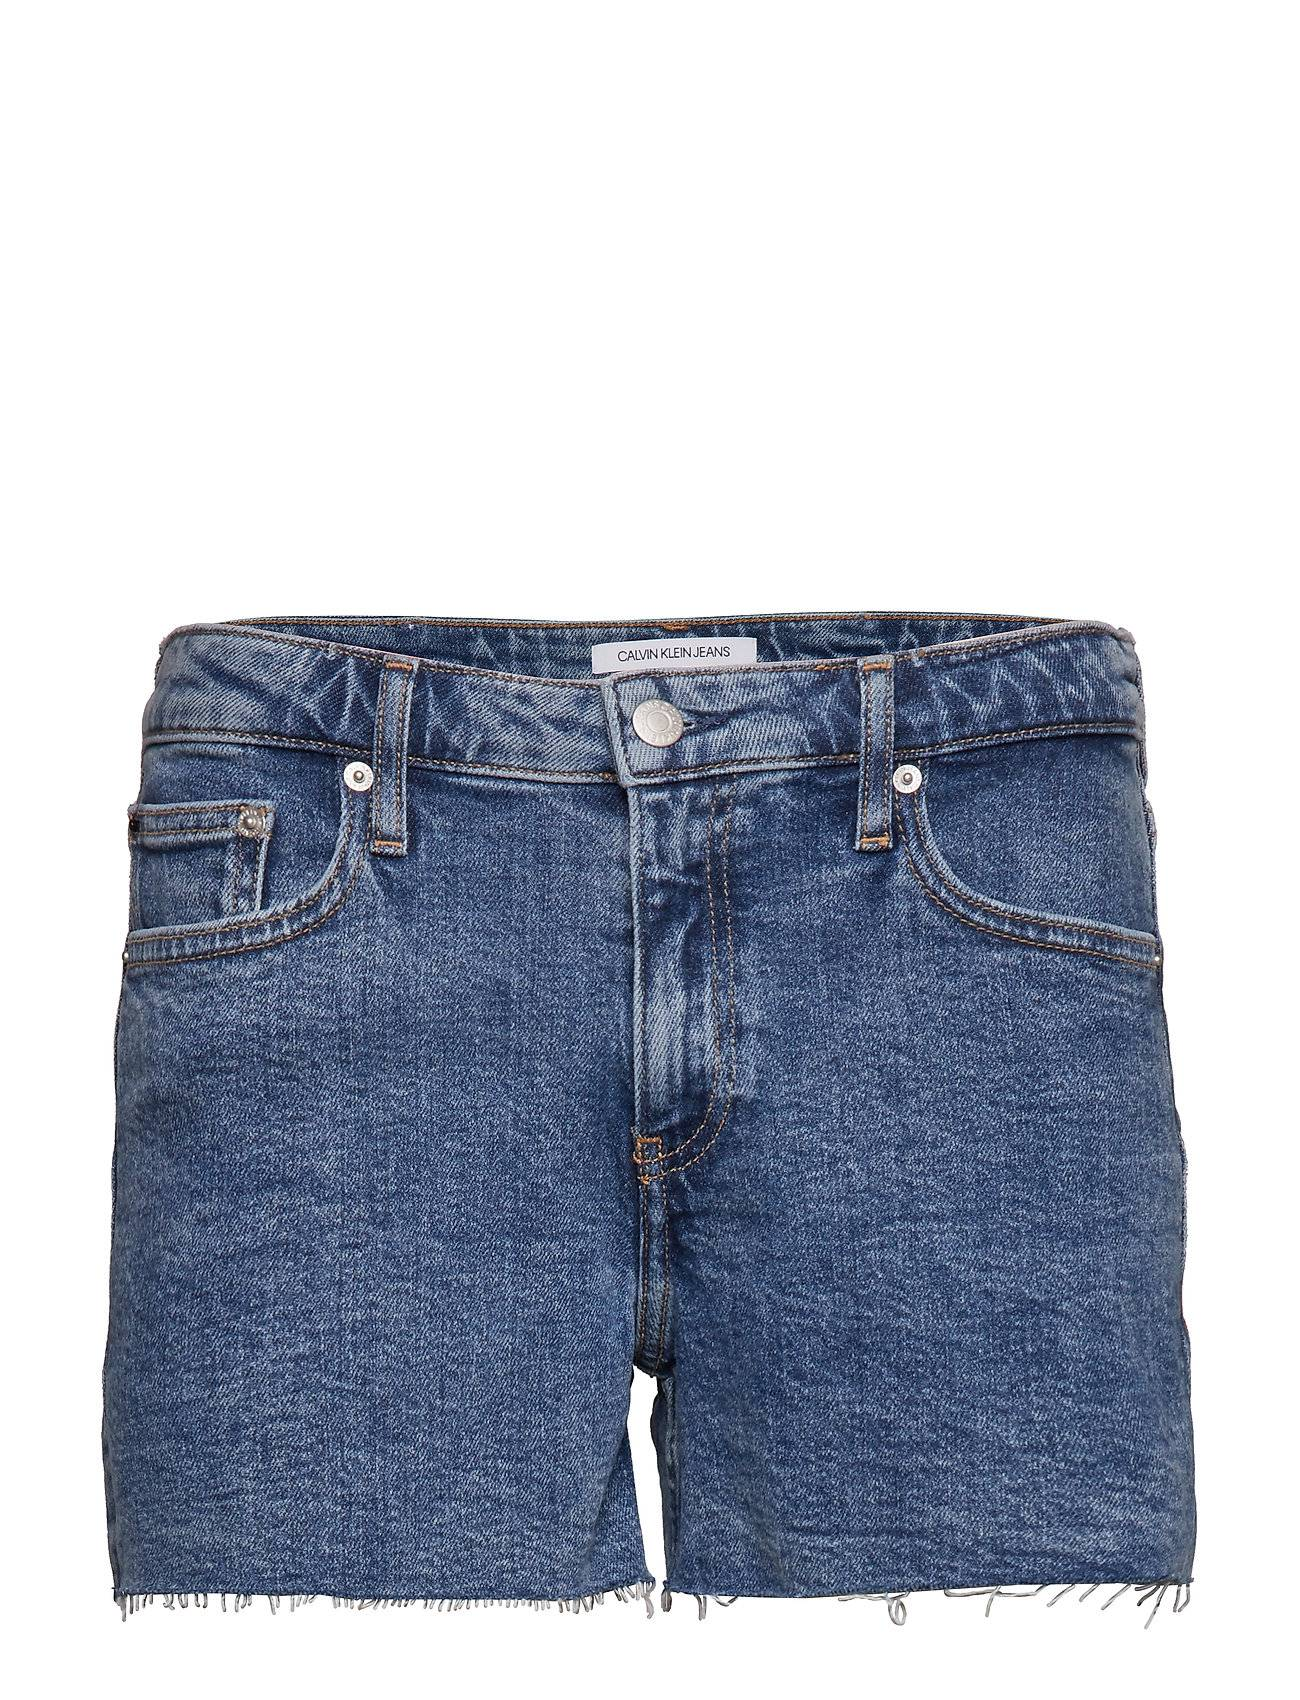 Image of Calvin Mid Rise Weekend Sho Shorts Denim Shorts Sininen Calvin Klein Jeans